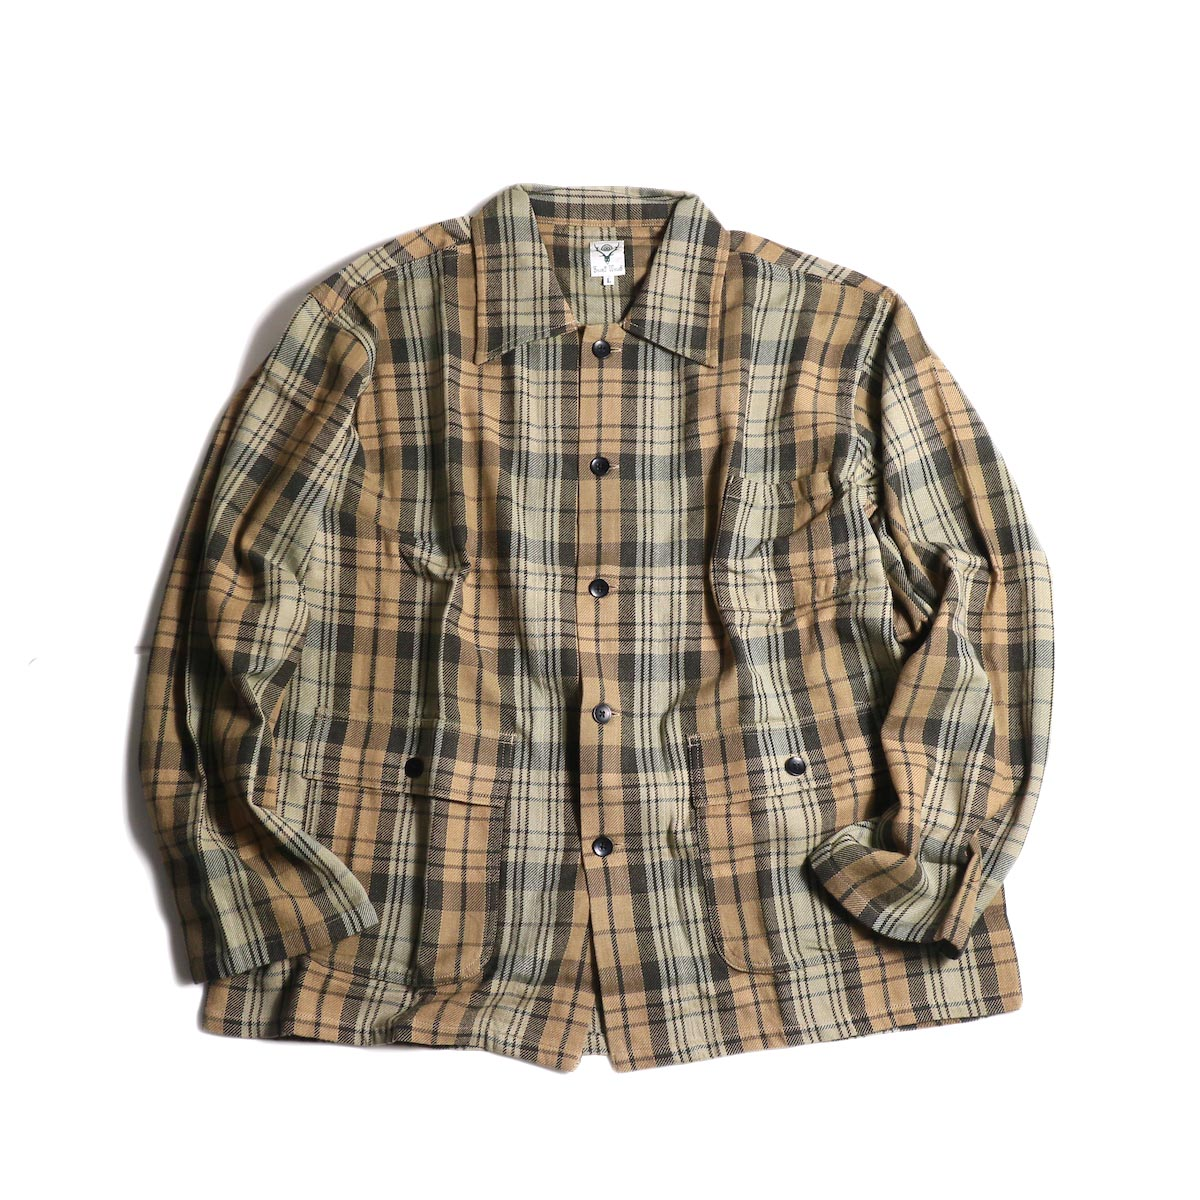 South2 West8 / Hunting Shirt -Plaid Twill (Khaki/Black)